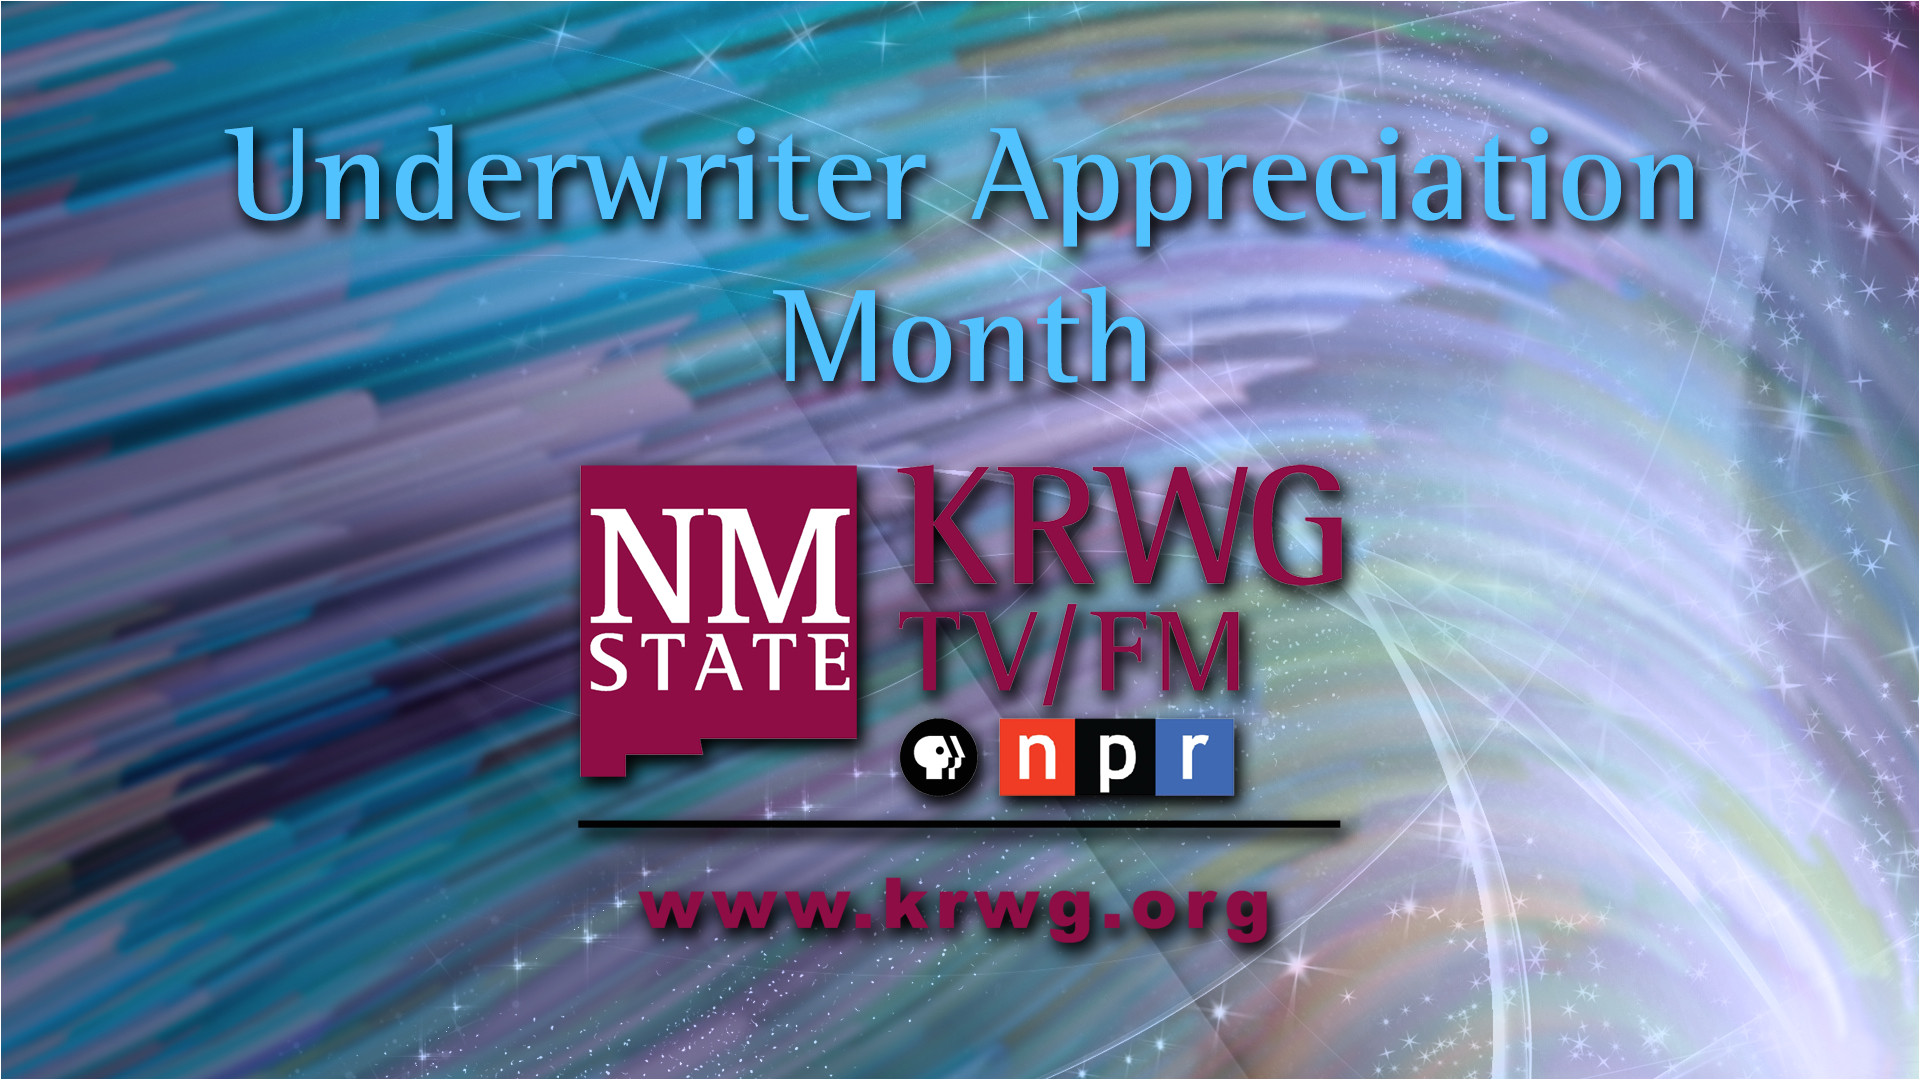 july is underwriter appreciation month